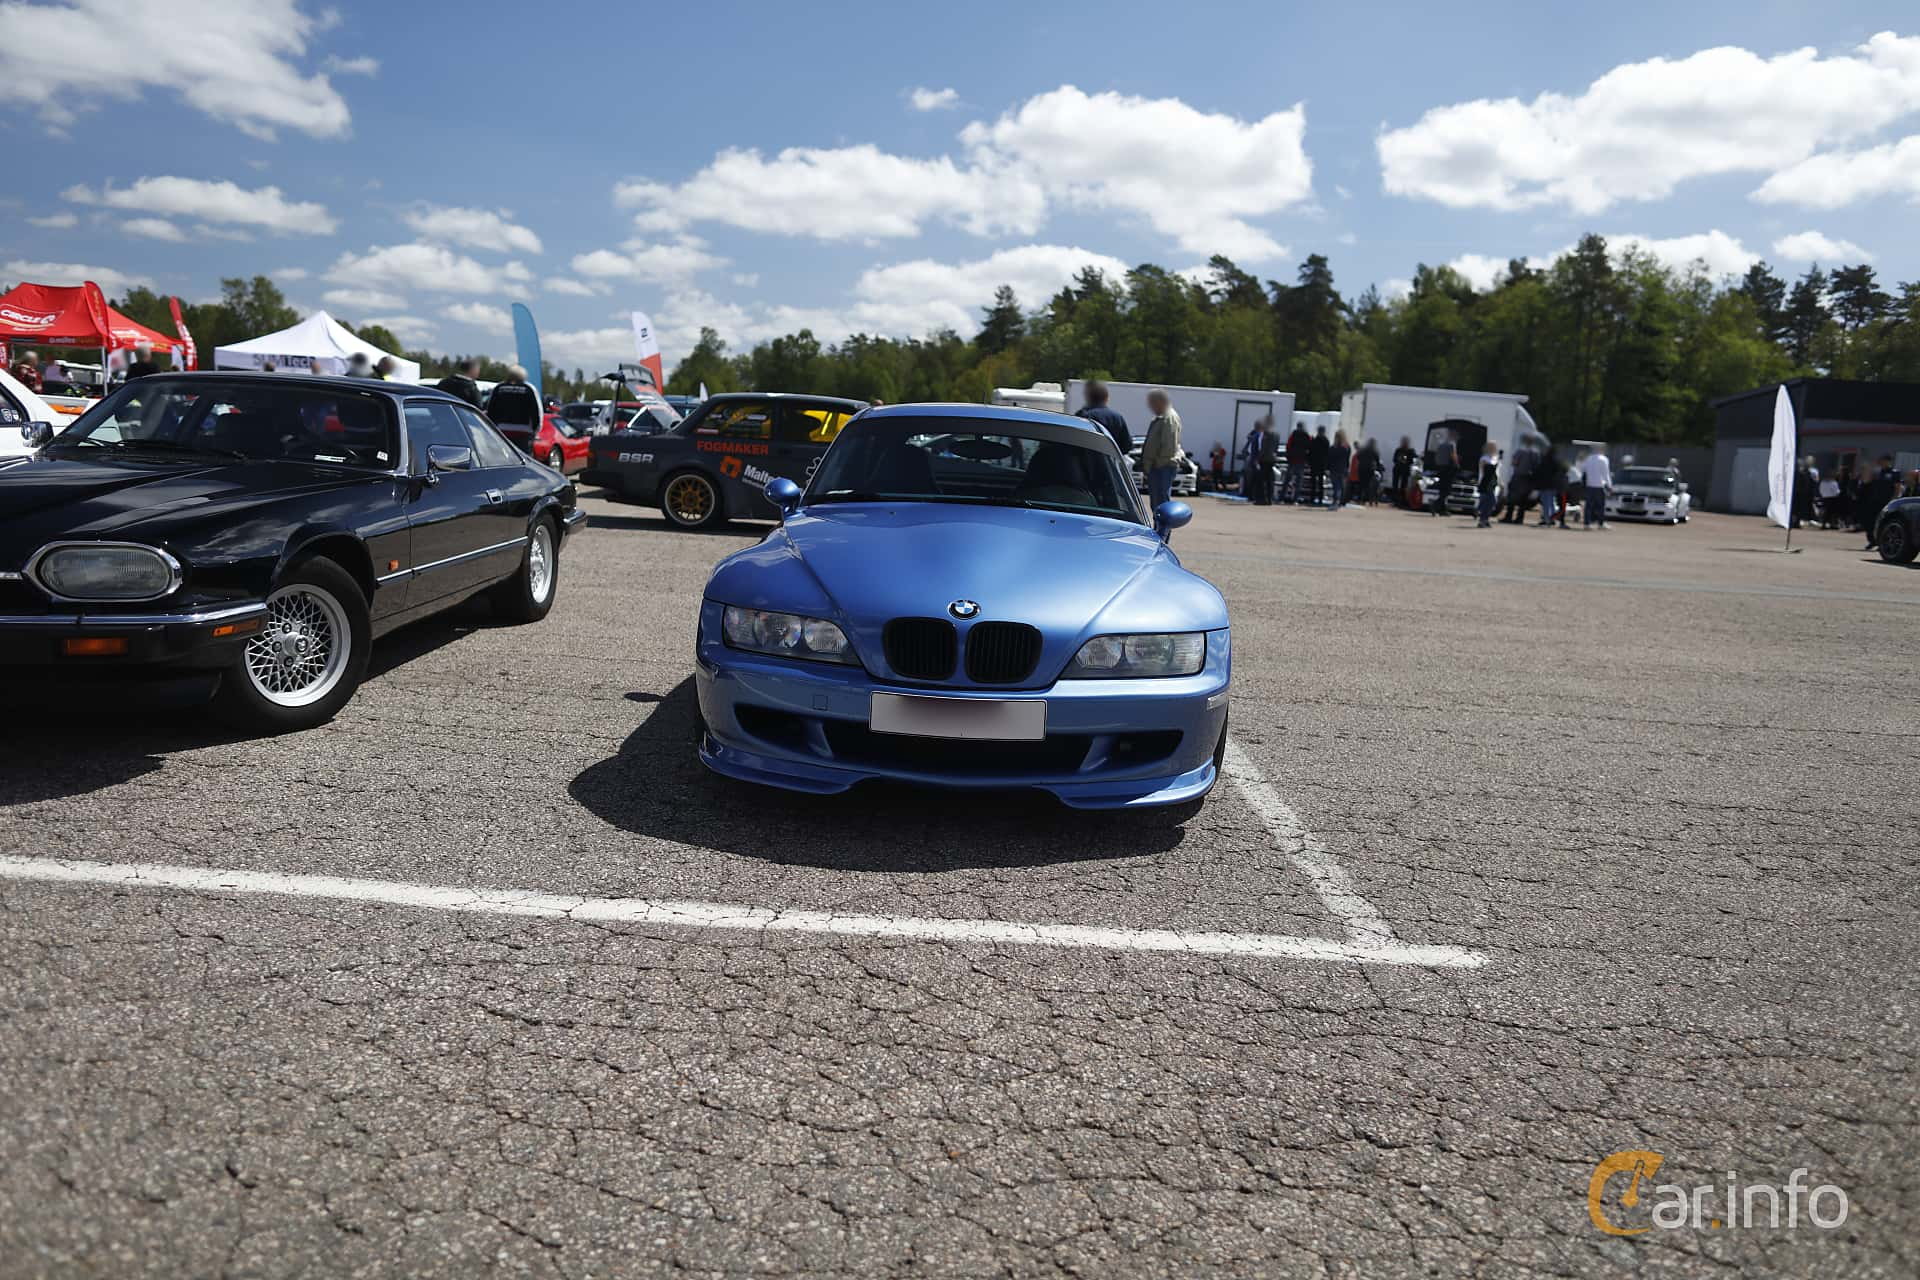 BMW M Coupé  Manual, 321hp, 1999 at Anderstorp Sportbilsfestival 2019